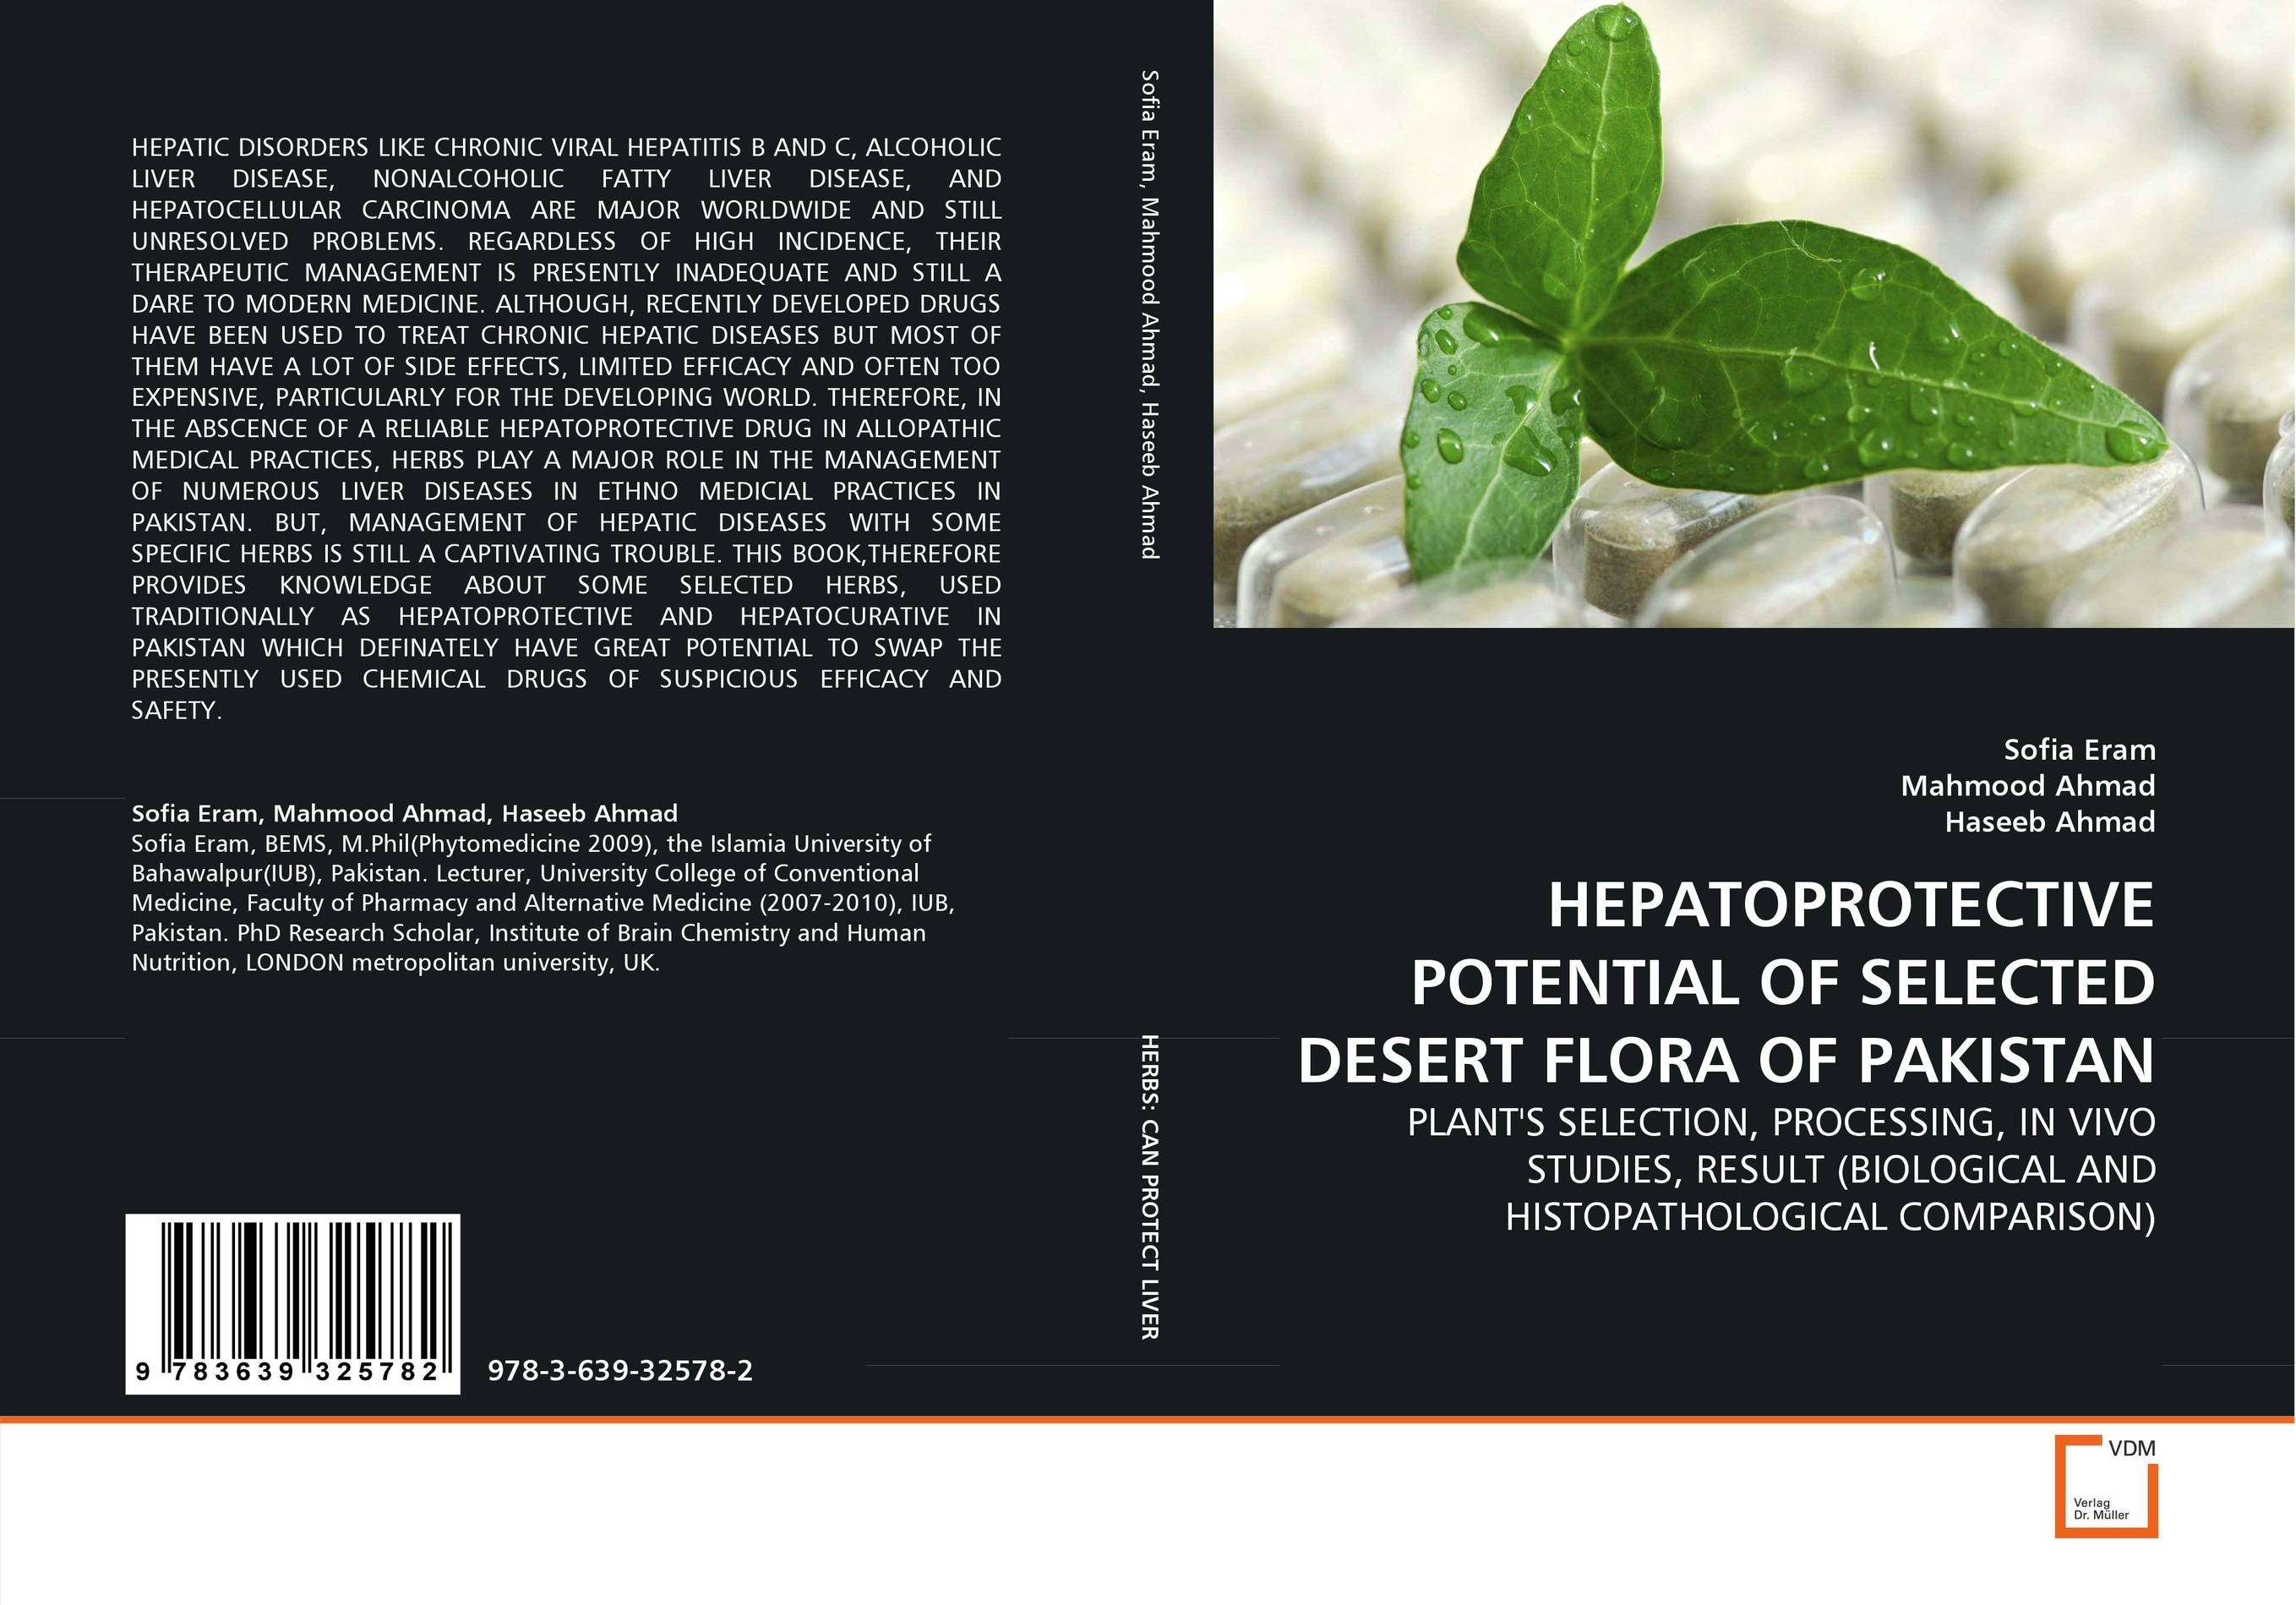 HEPATOPROTECTIVE POTENTIAL OF SELECTED DESERT FLORA OF PAKISTAN shyam singh and l p awasthi characterization and management of viral diseases of papaya